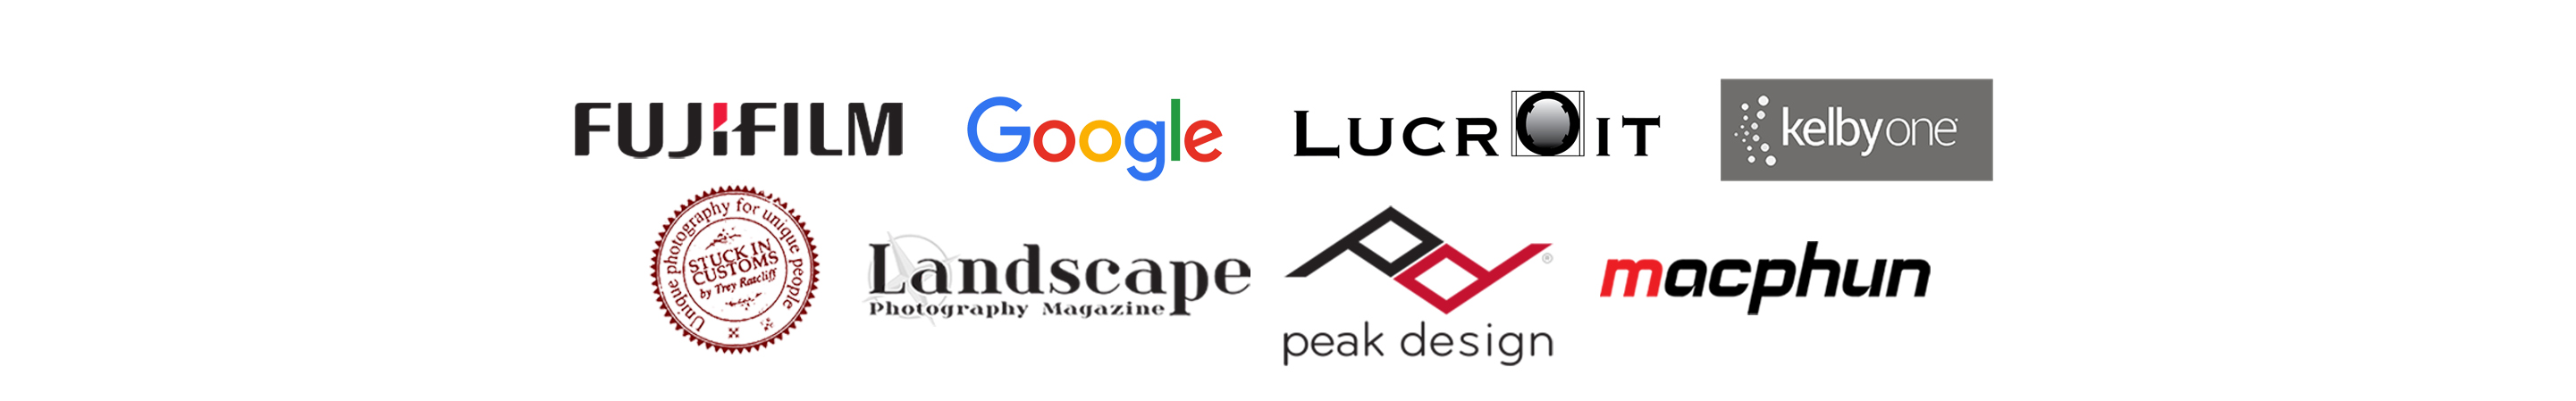 Collection of media logos